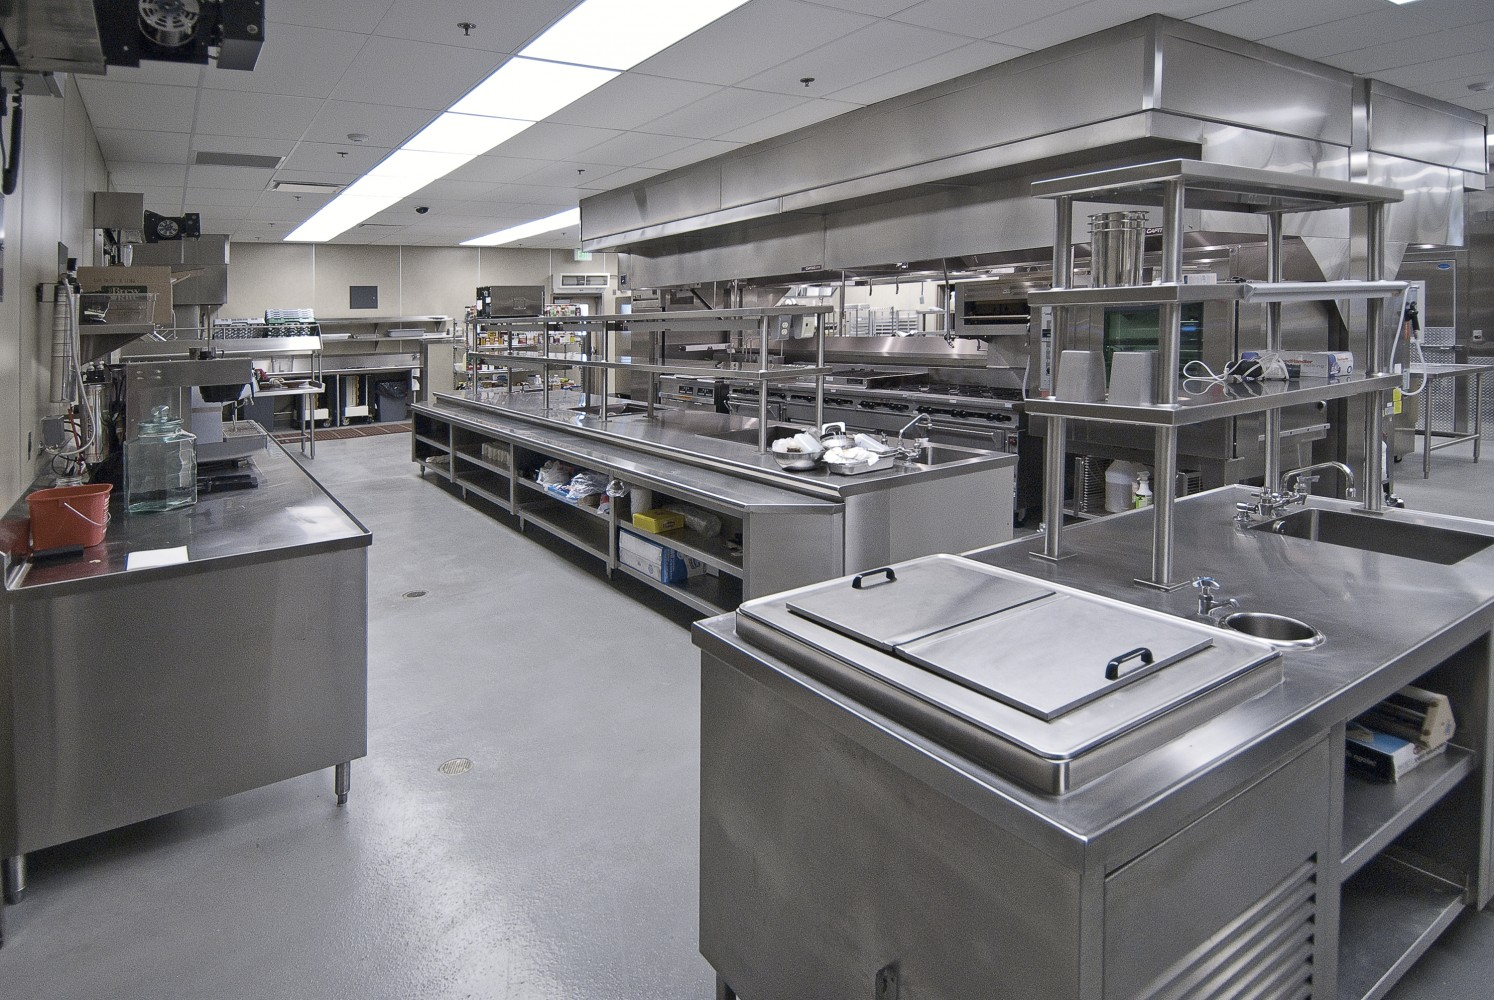 Restaurant Equipment Kitchen Supplies for in Utica NY